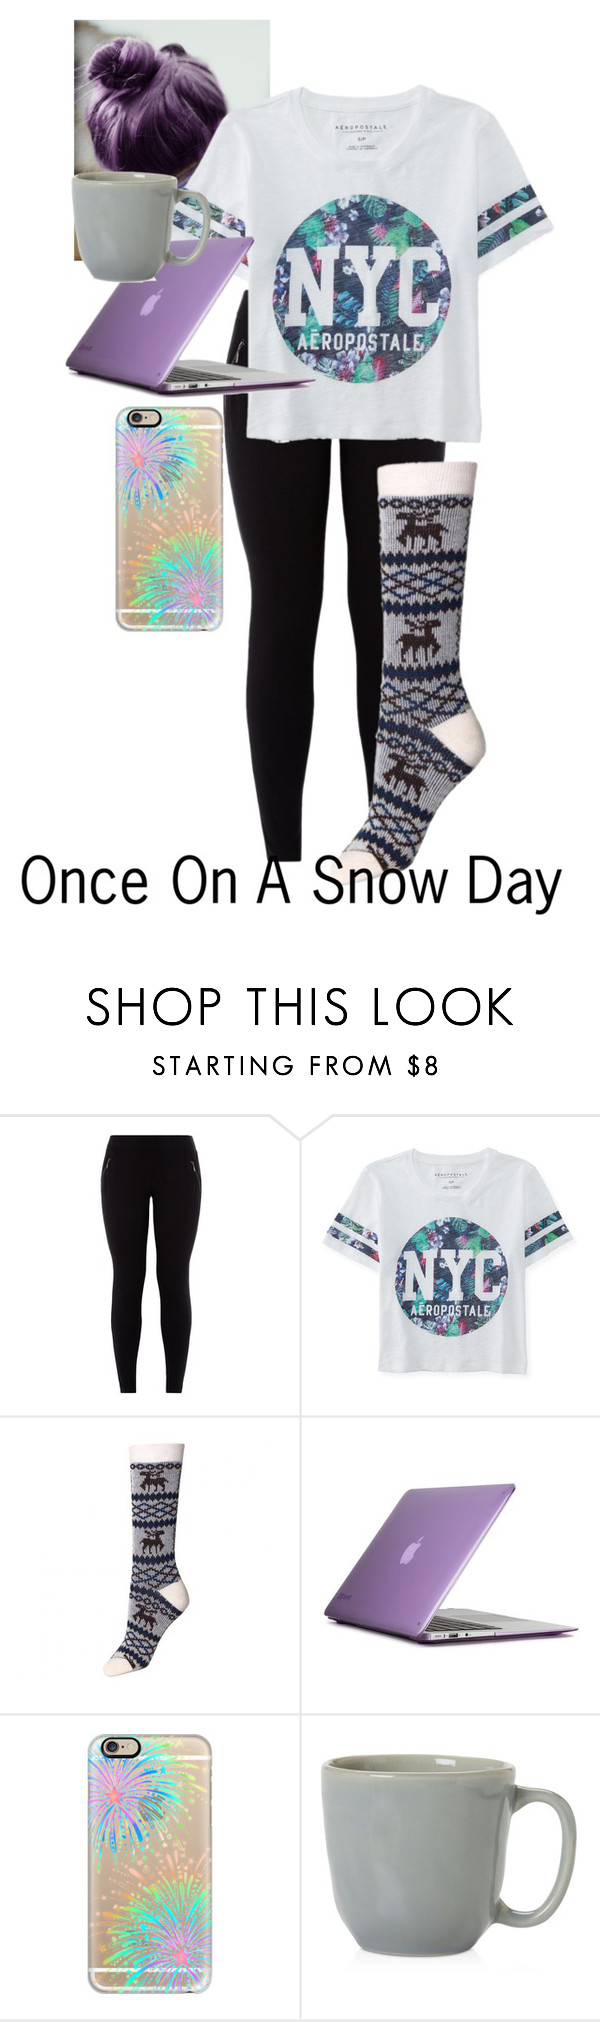 """Once On A Snow Day"" by oned-lm-5sos ❤ liked on Polyvore featuring Aéropostale, Speck, Casetify and Juliska"